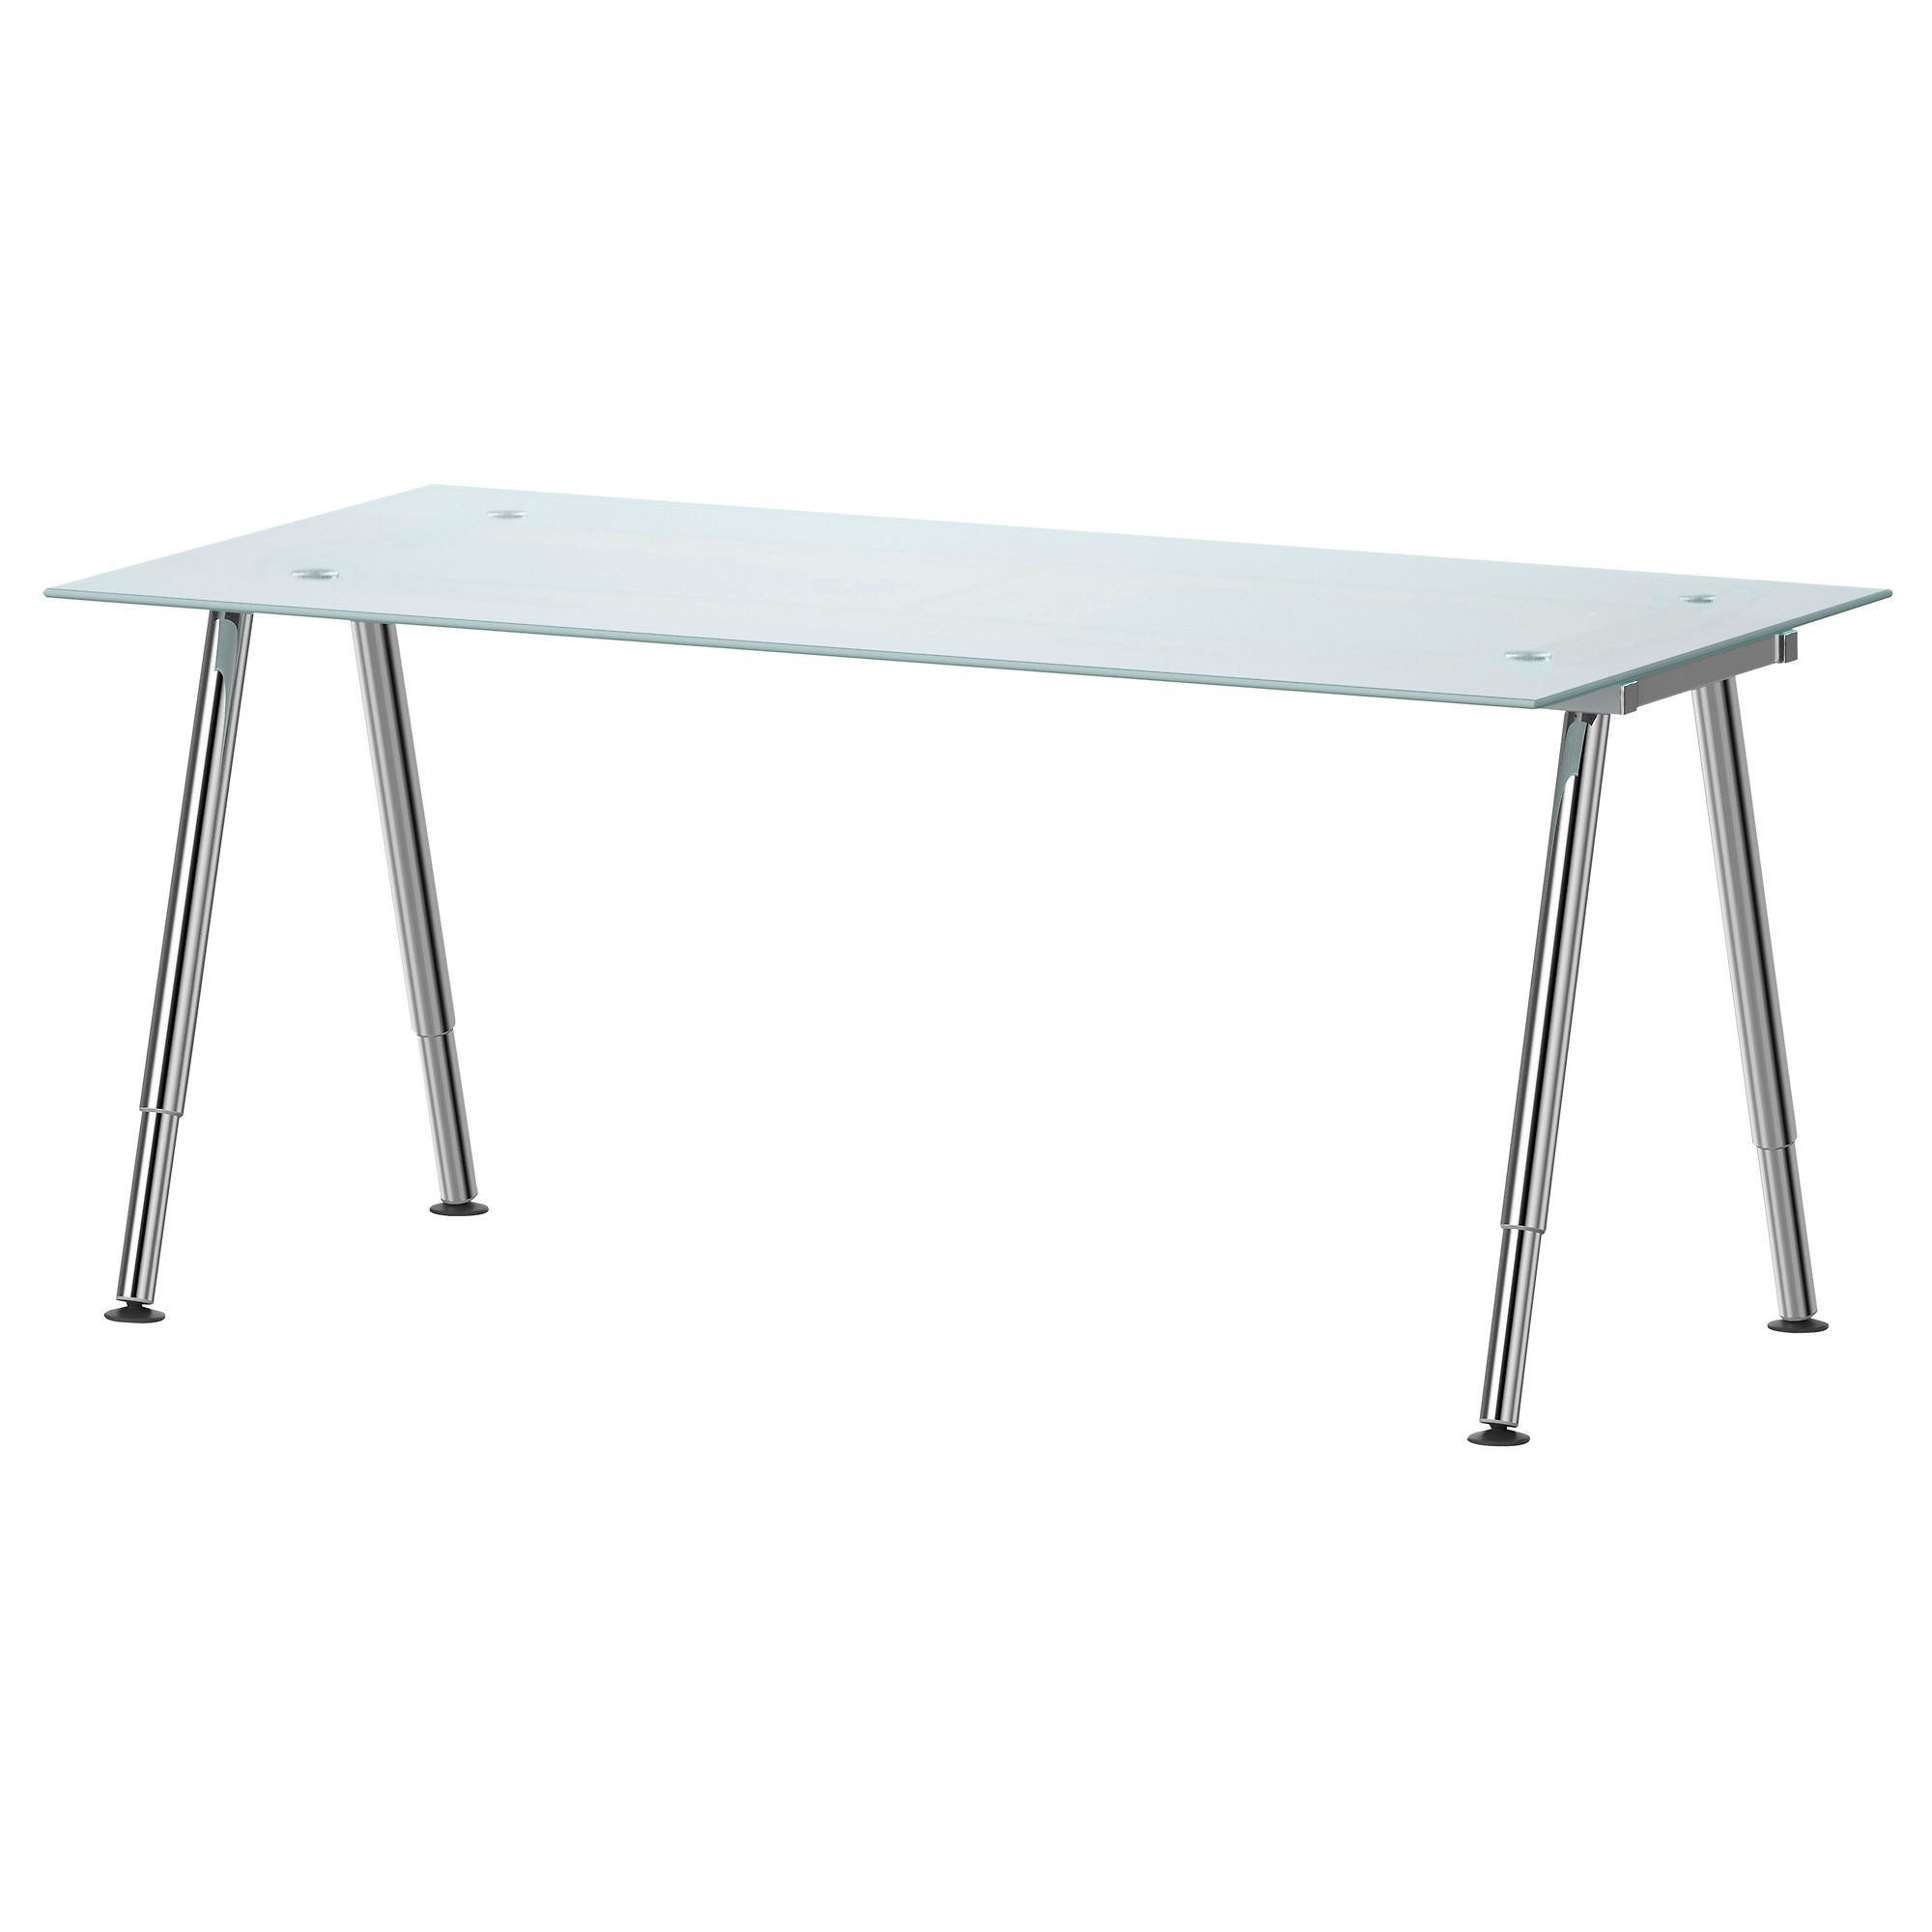 Ikea Us Furniture And Home Furnishings Ikea Glass Desk Ikea Galant Desk Ikea